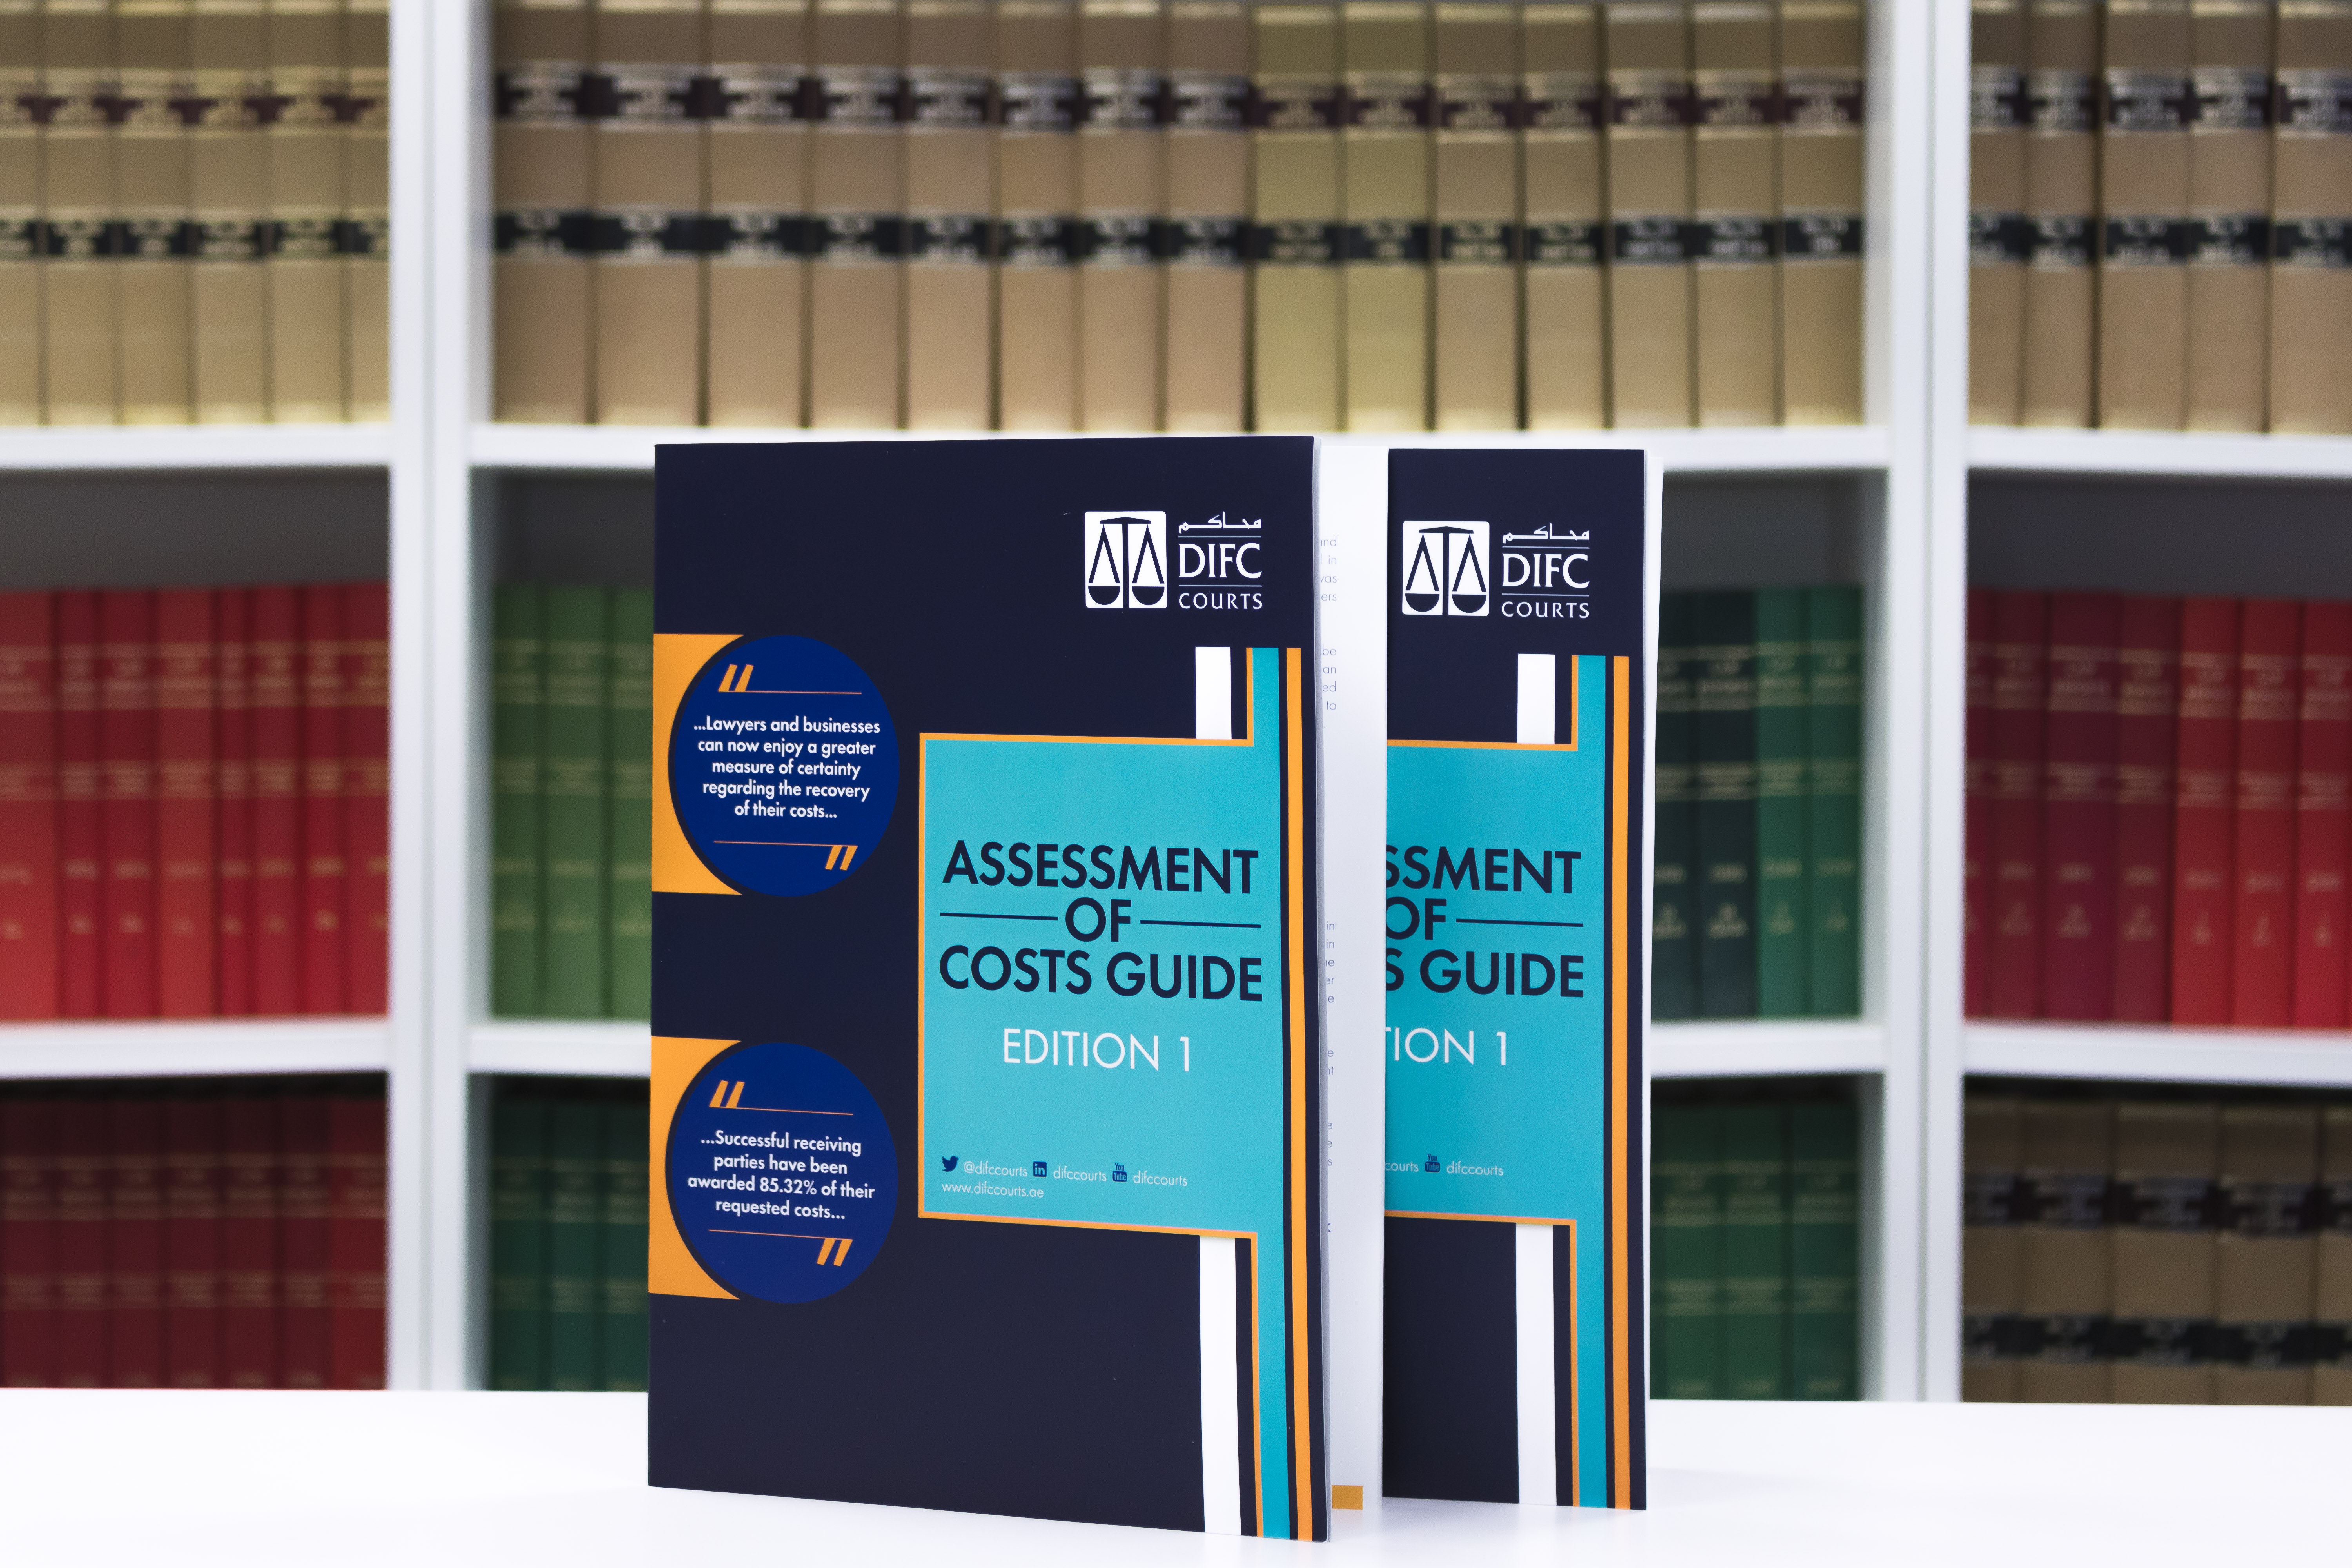 Costs Recovery in the DIFC Courts